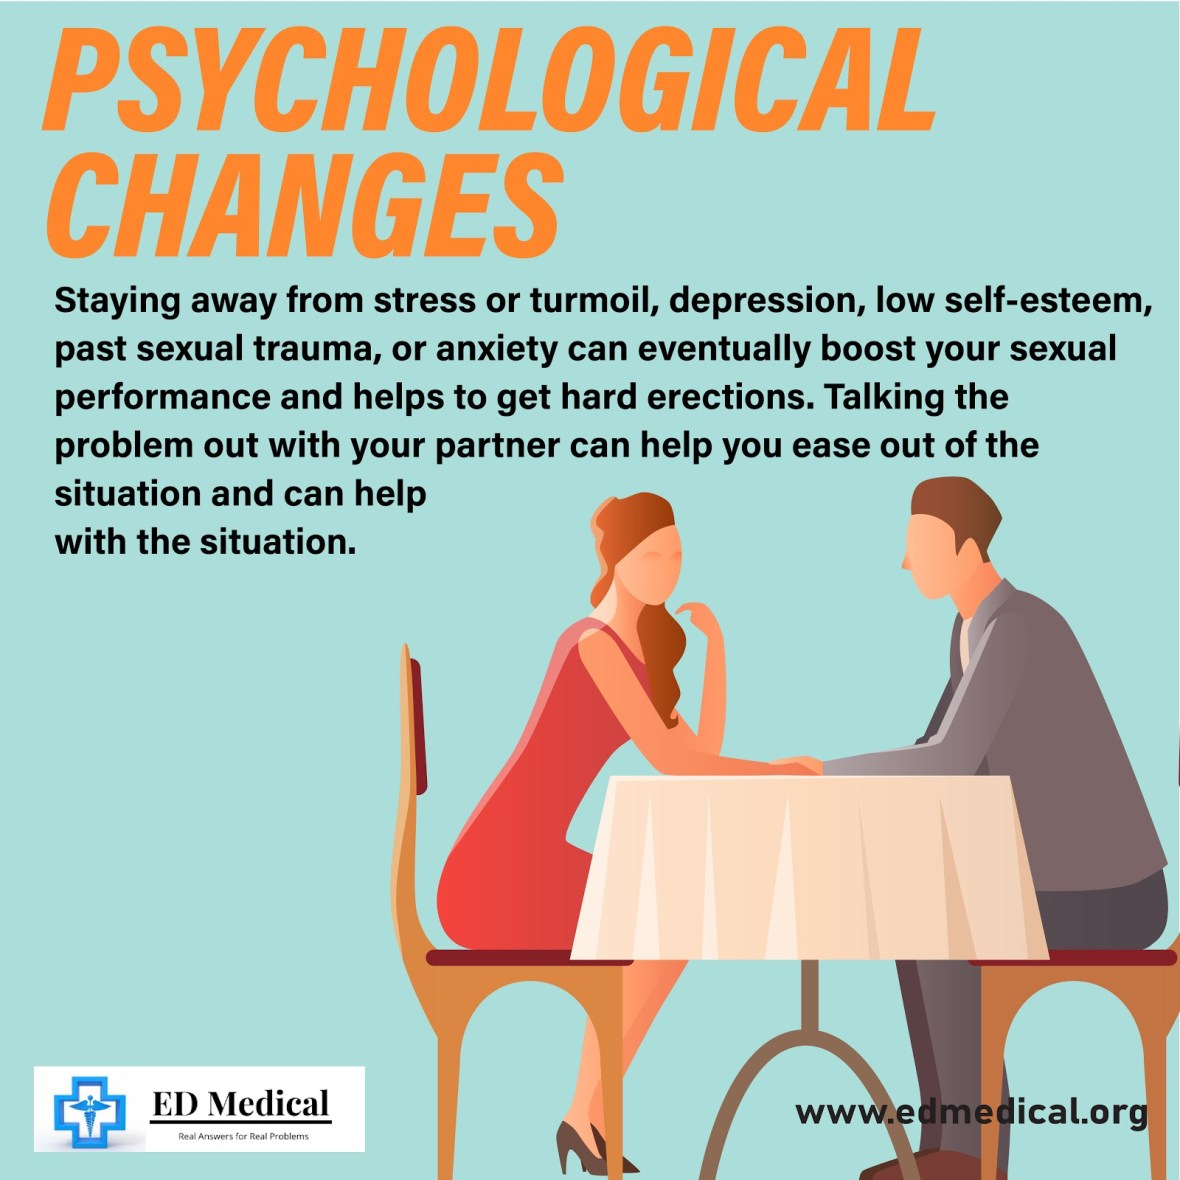 Psychological changes for staying hard